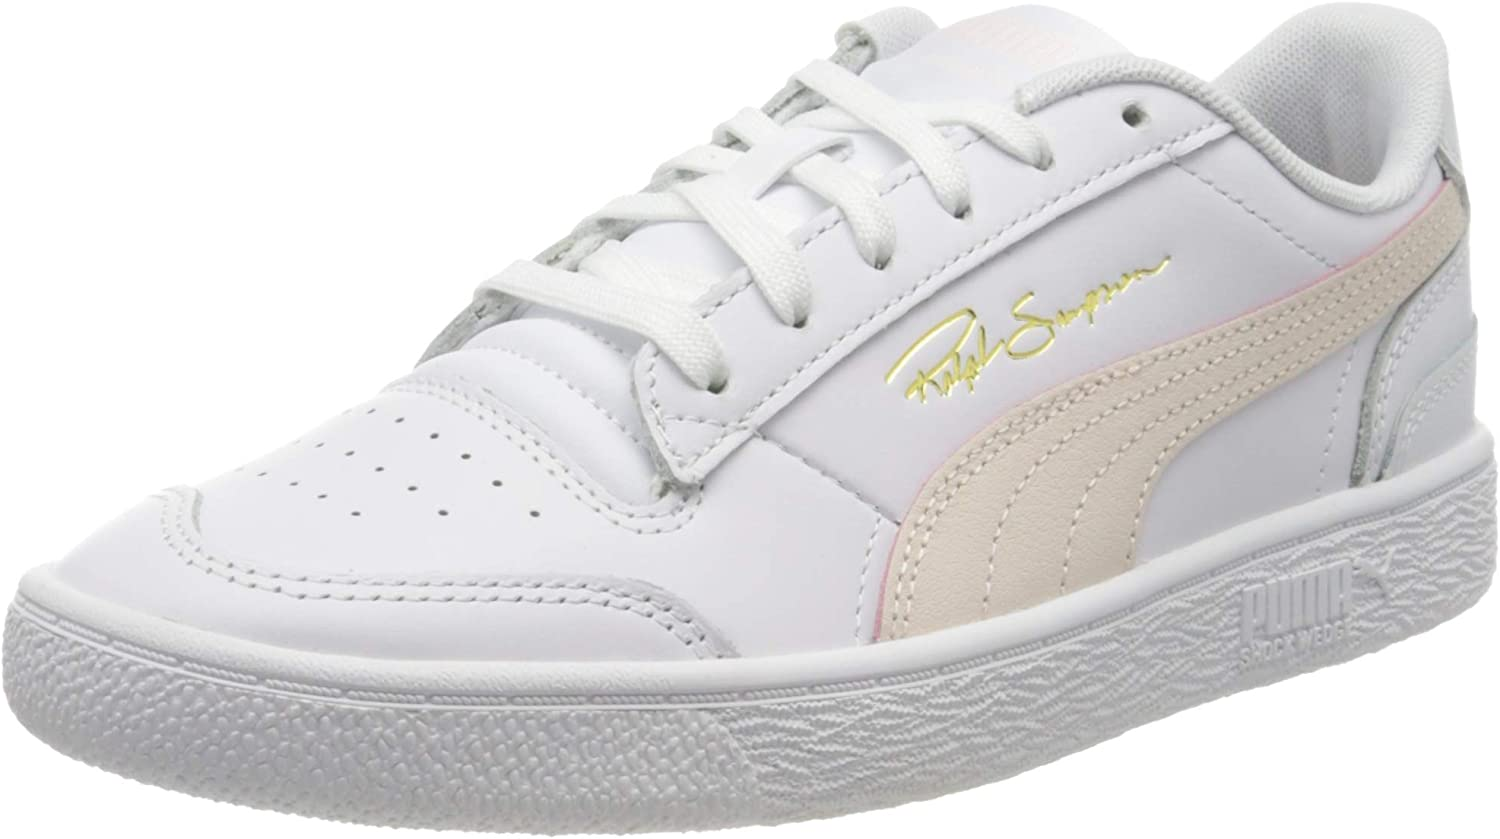 PUMA Direct 2021 spring and summer new sale of manufacturer Men's Low-Top One Trainers Size